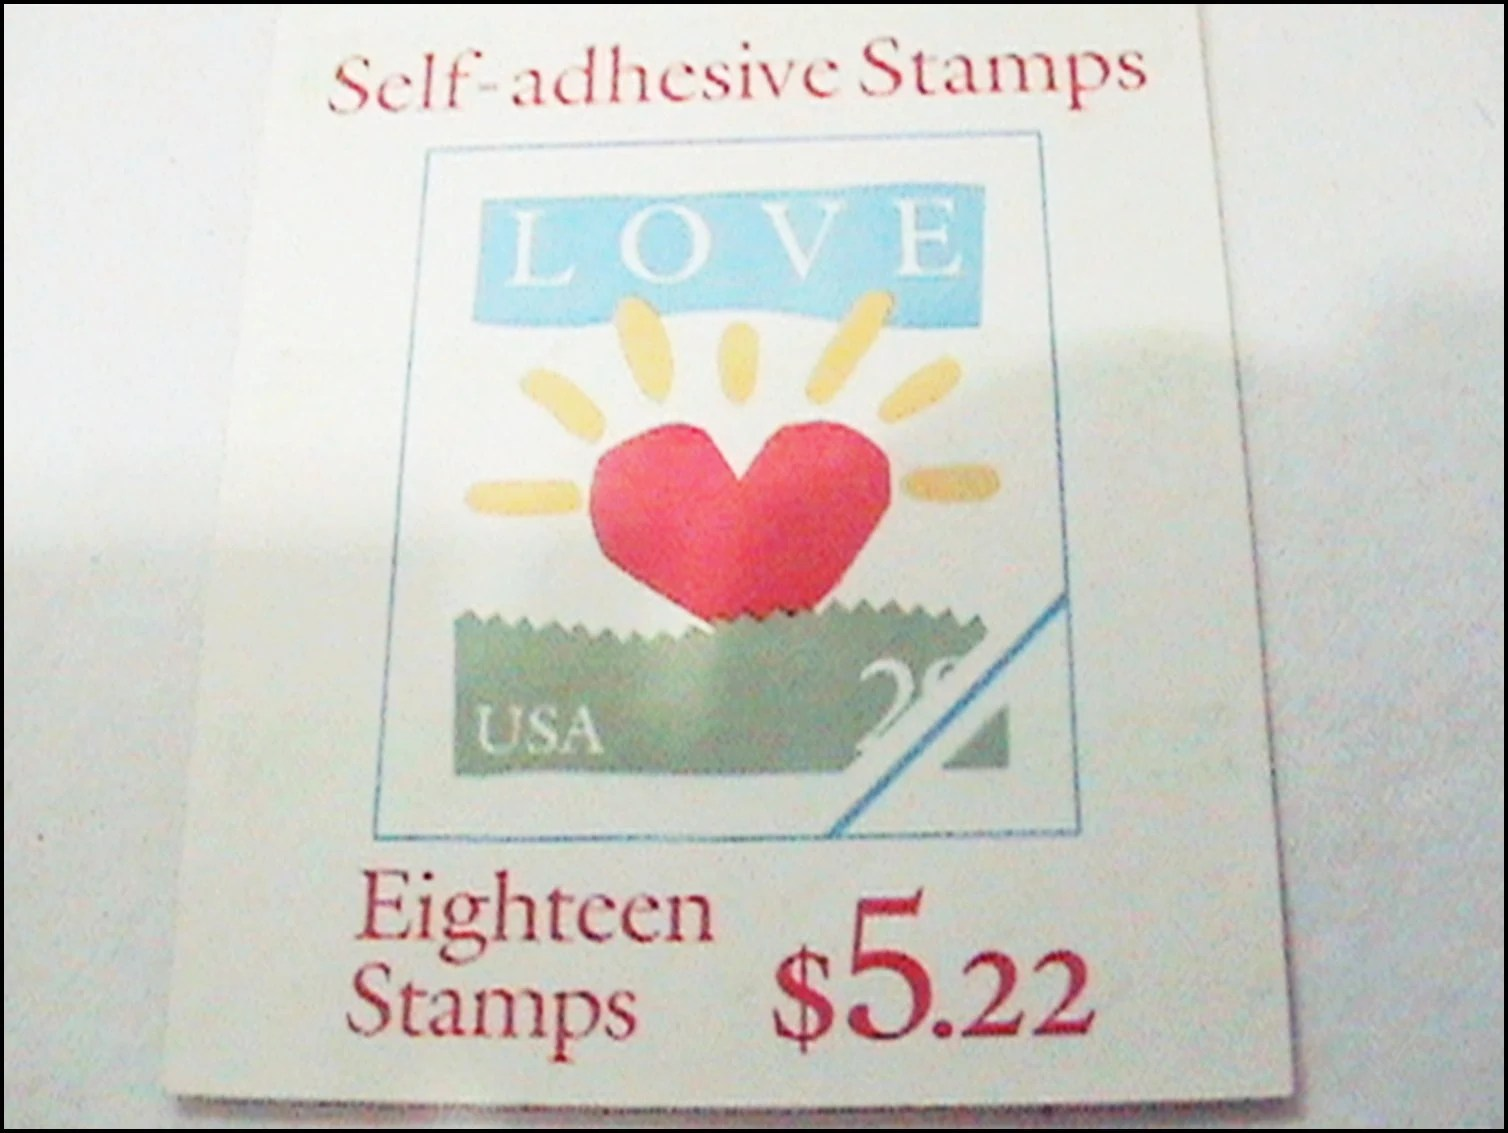 1993 love stamps